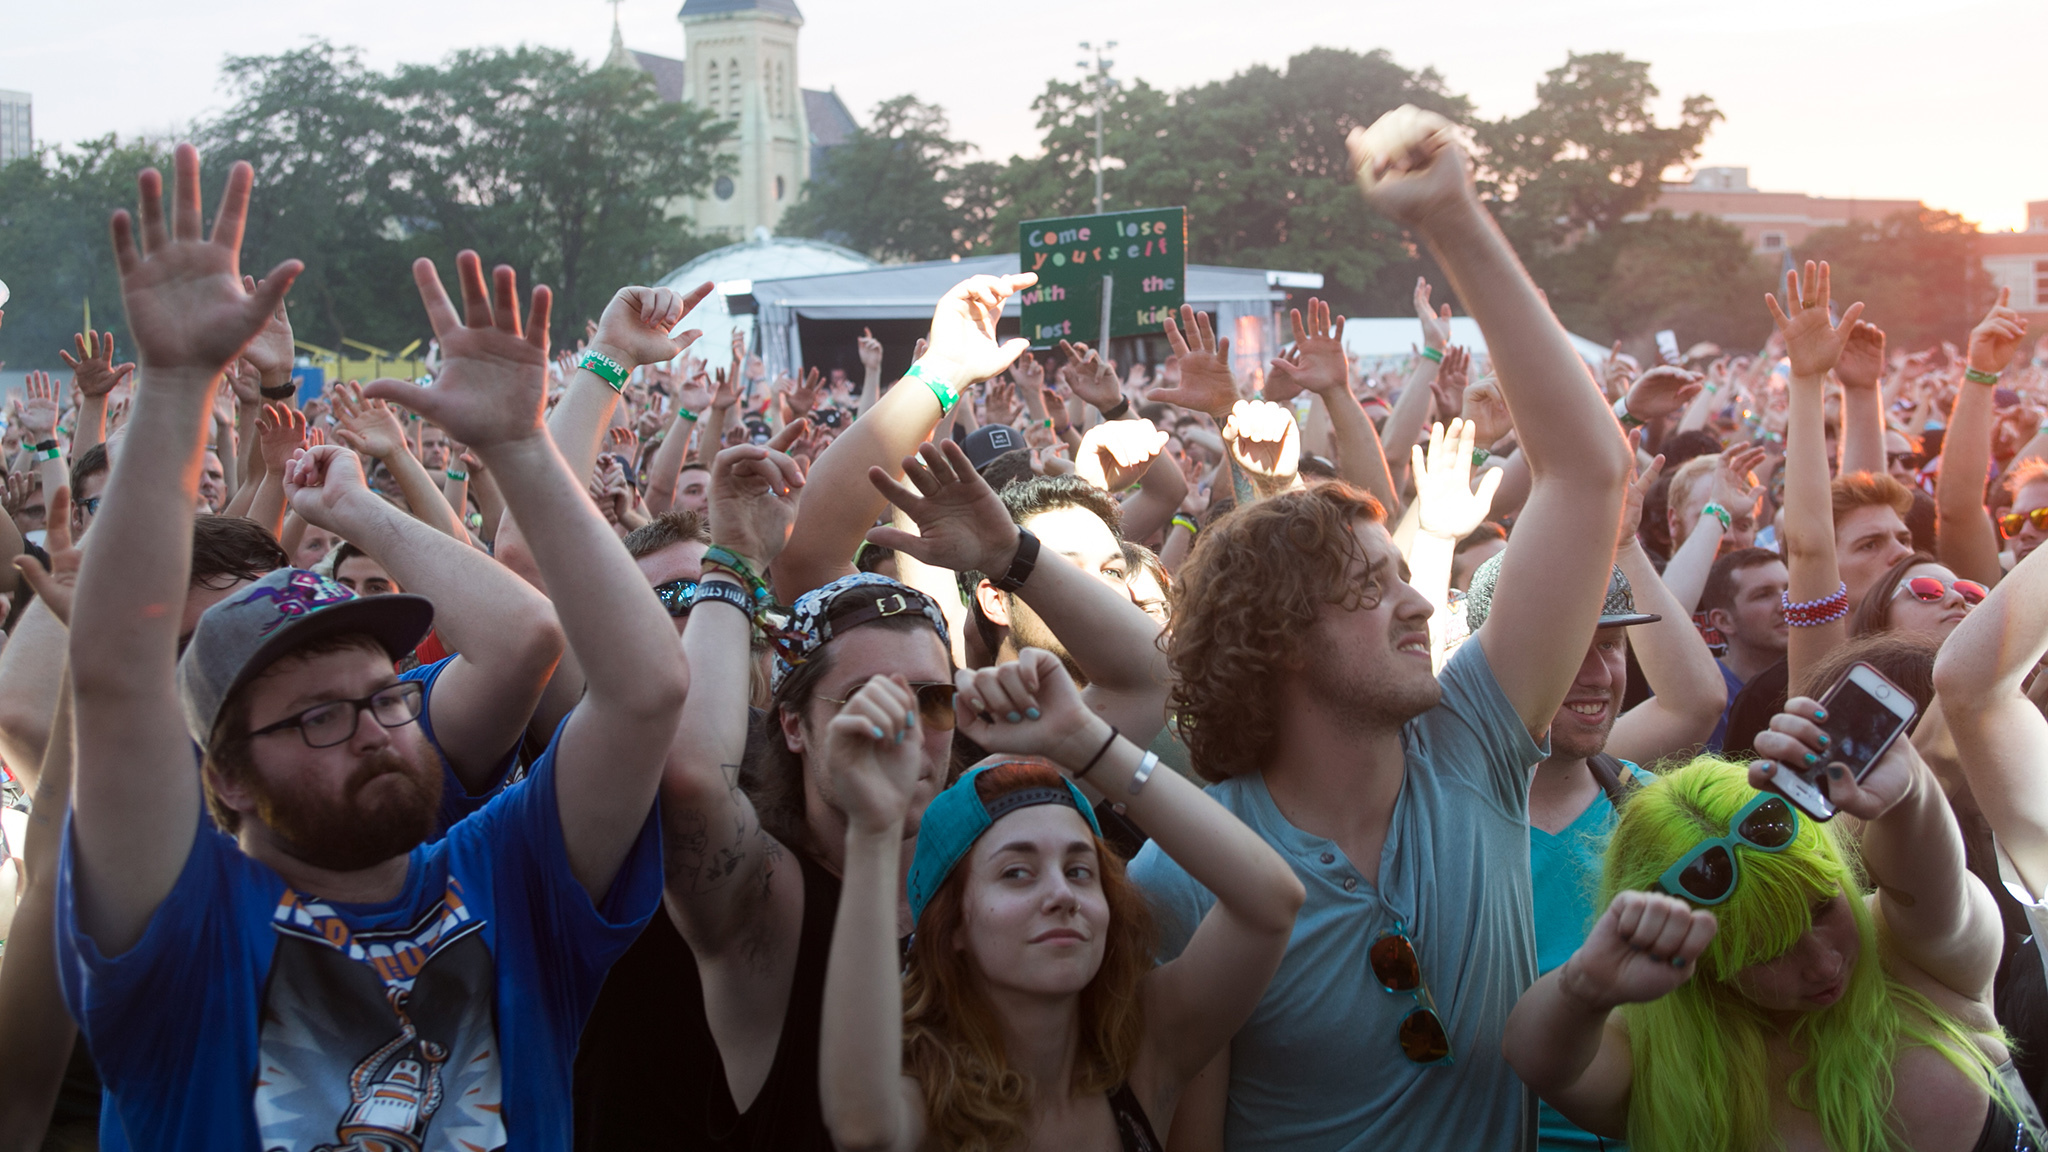 North Coast 2015, Saturday: Faces in the crowd